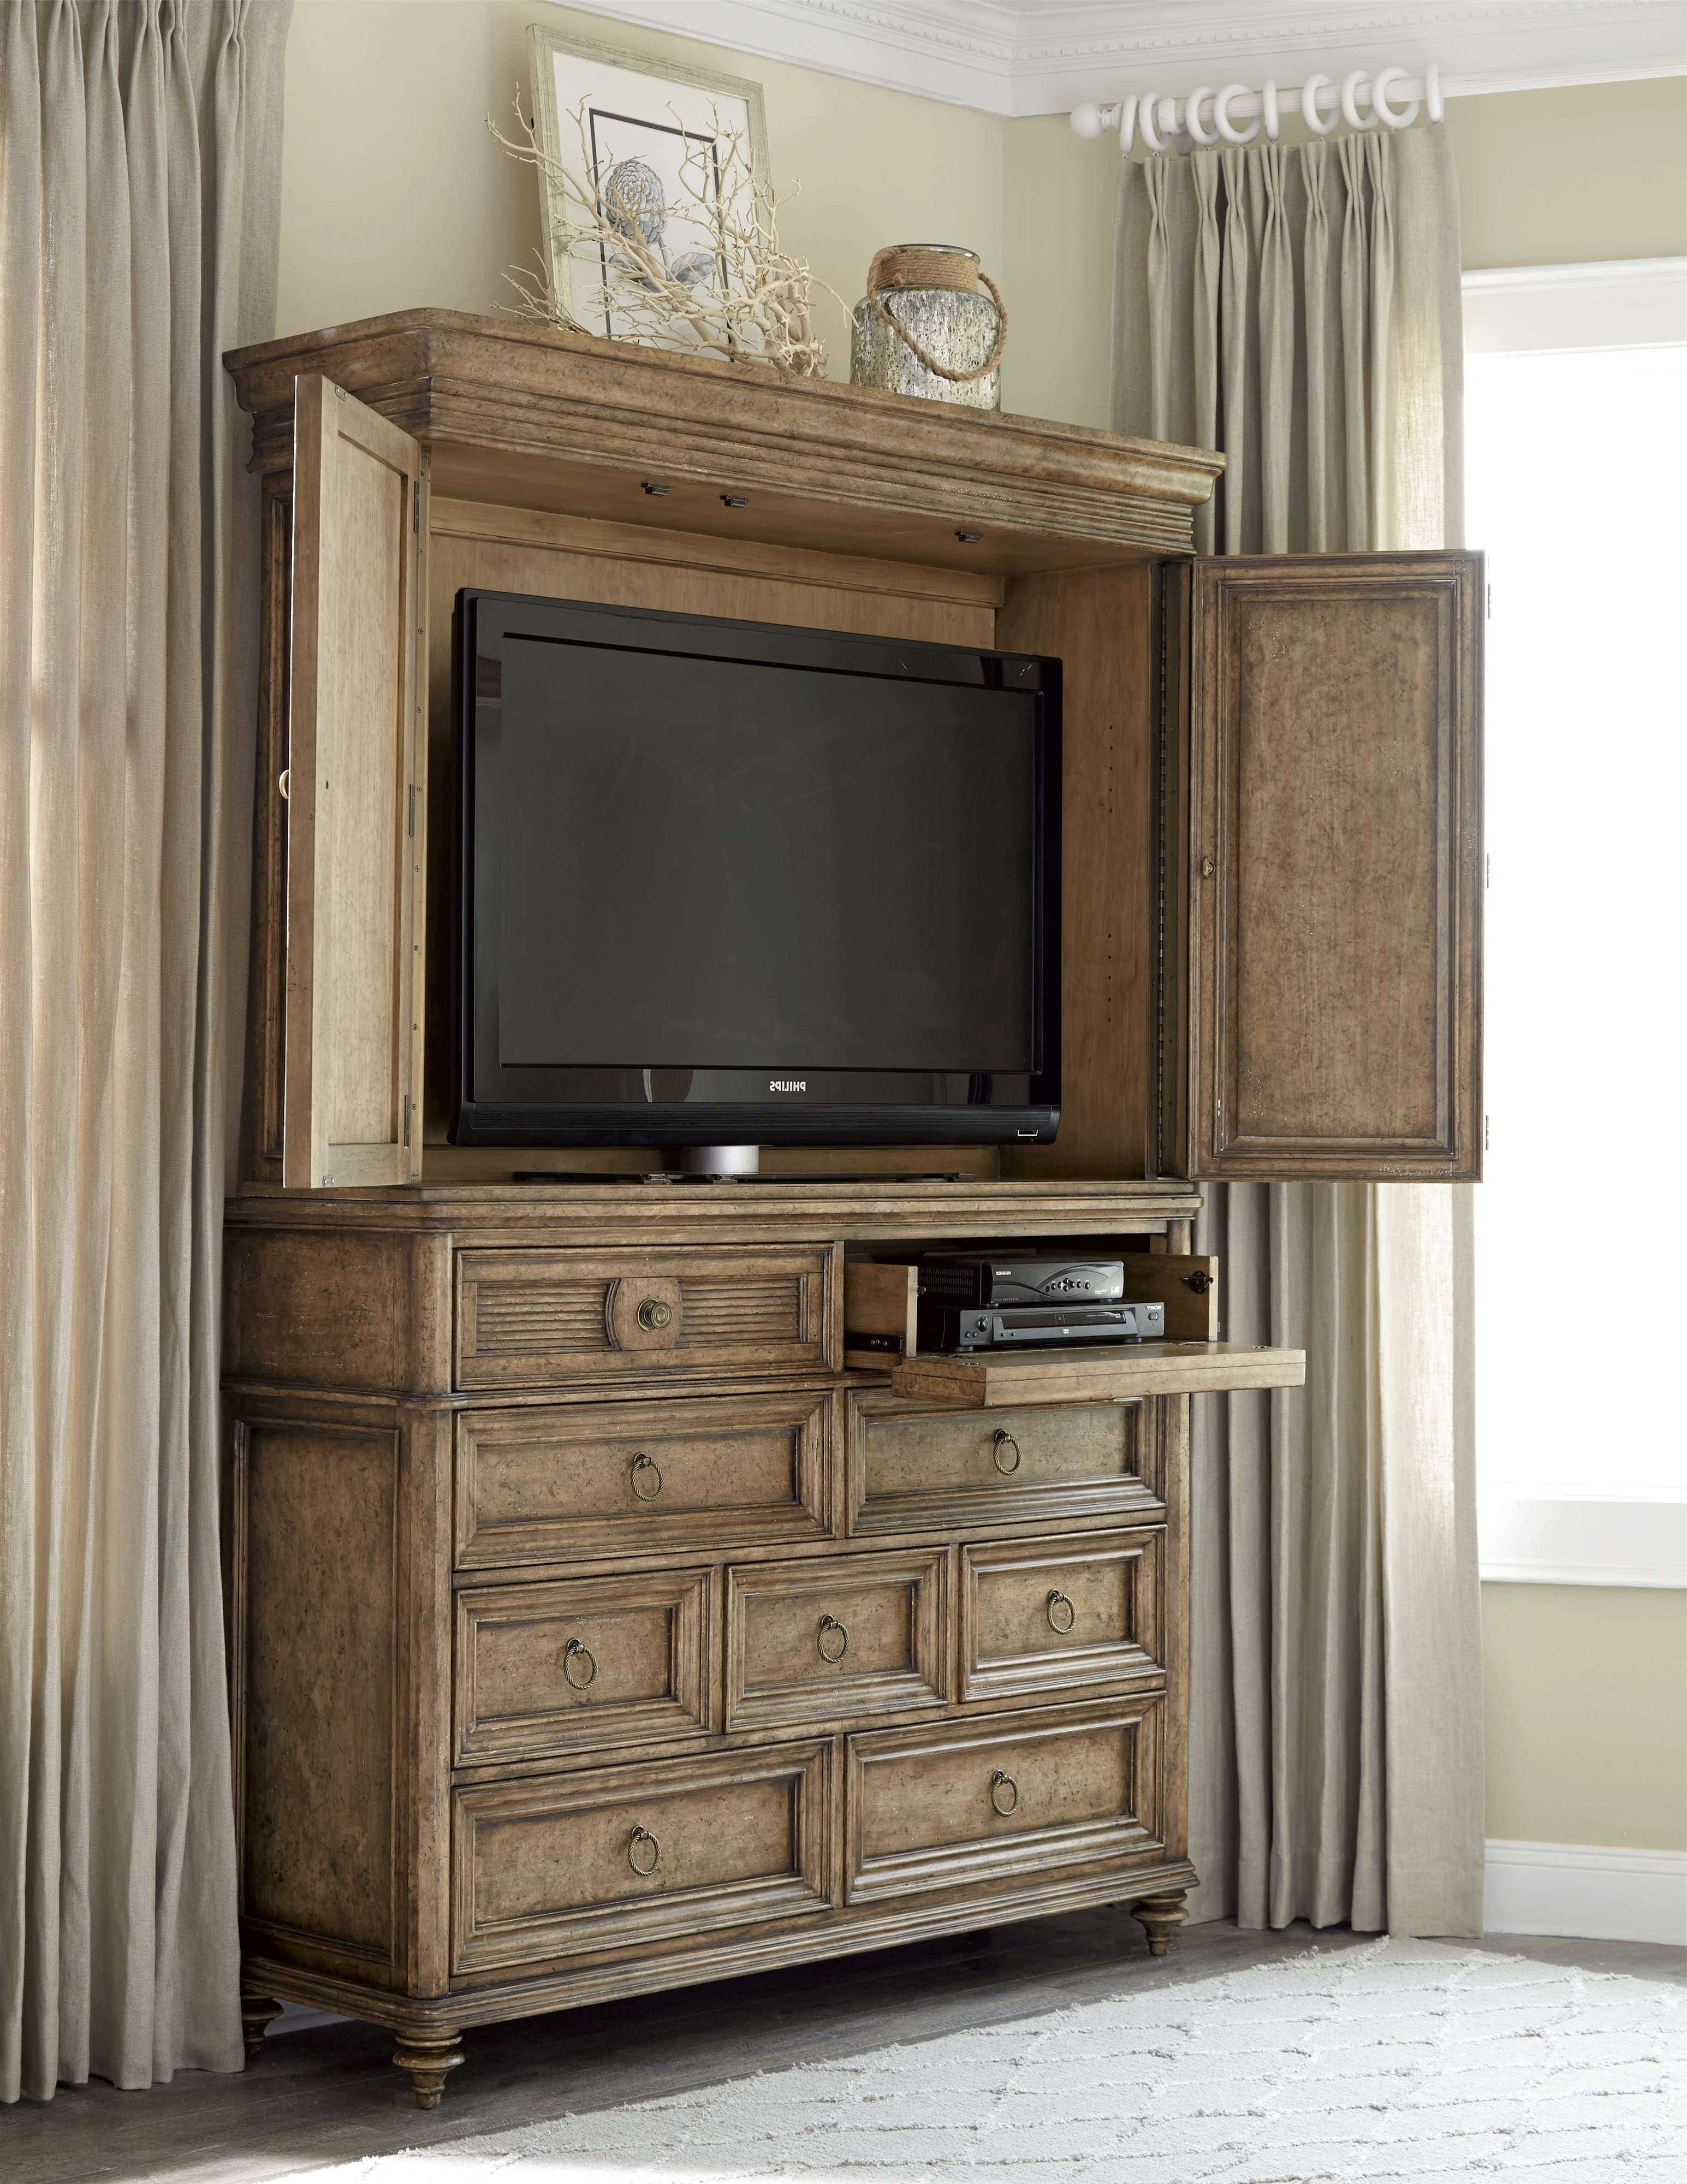 Fashionable Tv Hutch Cabinets Within This Grand Armoire Offers Great Style And Function To A Bedroom Or (Gallery 20 of 20)